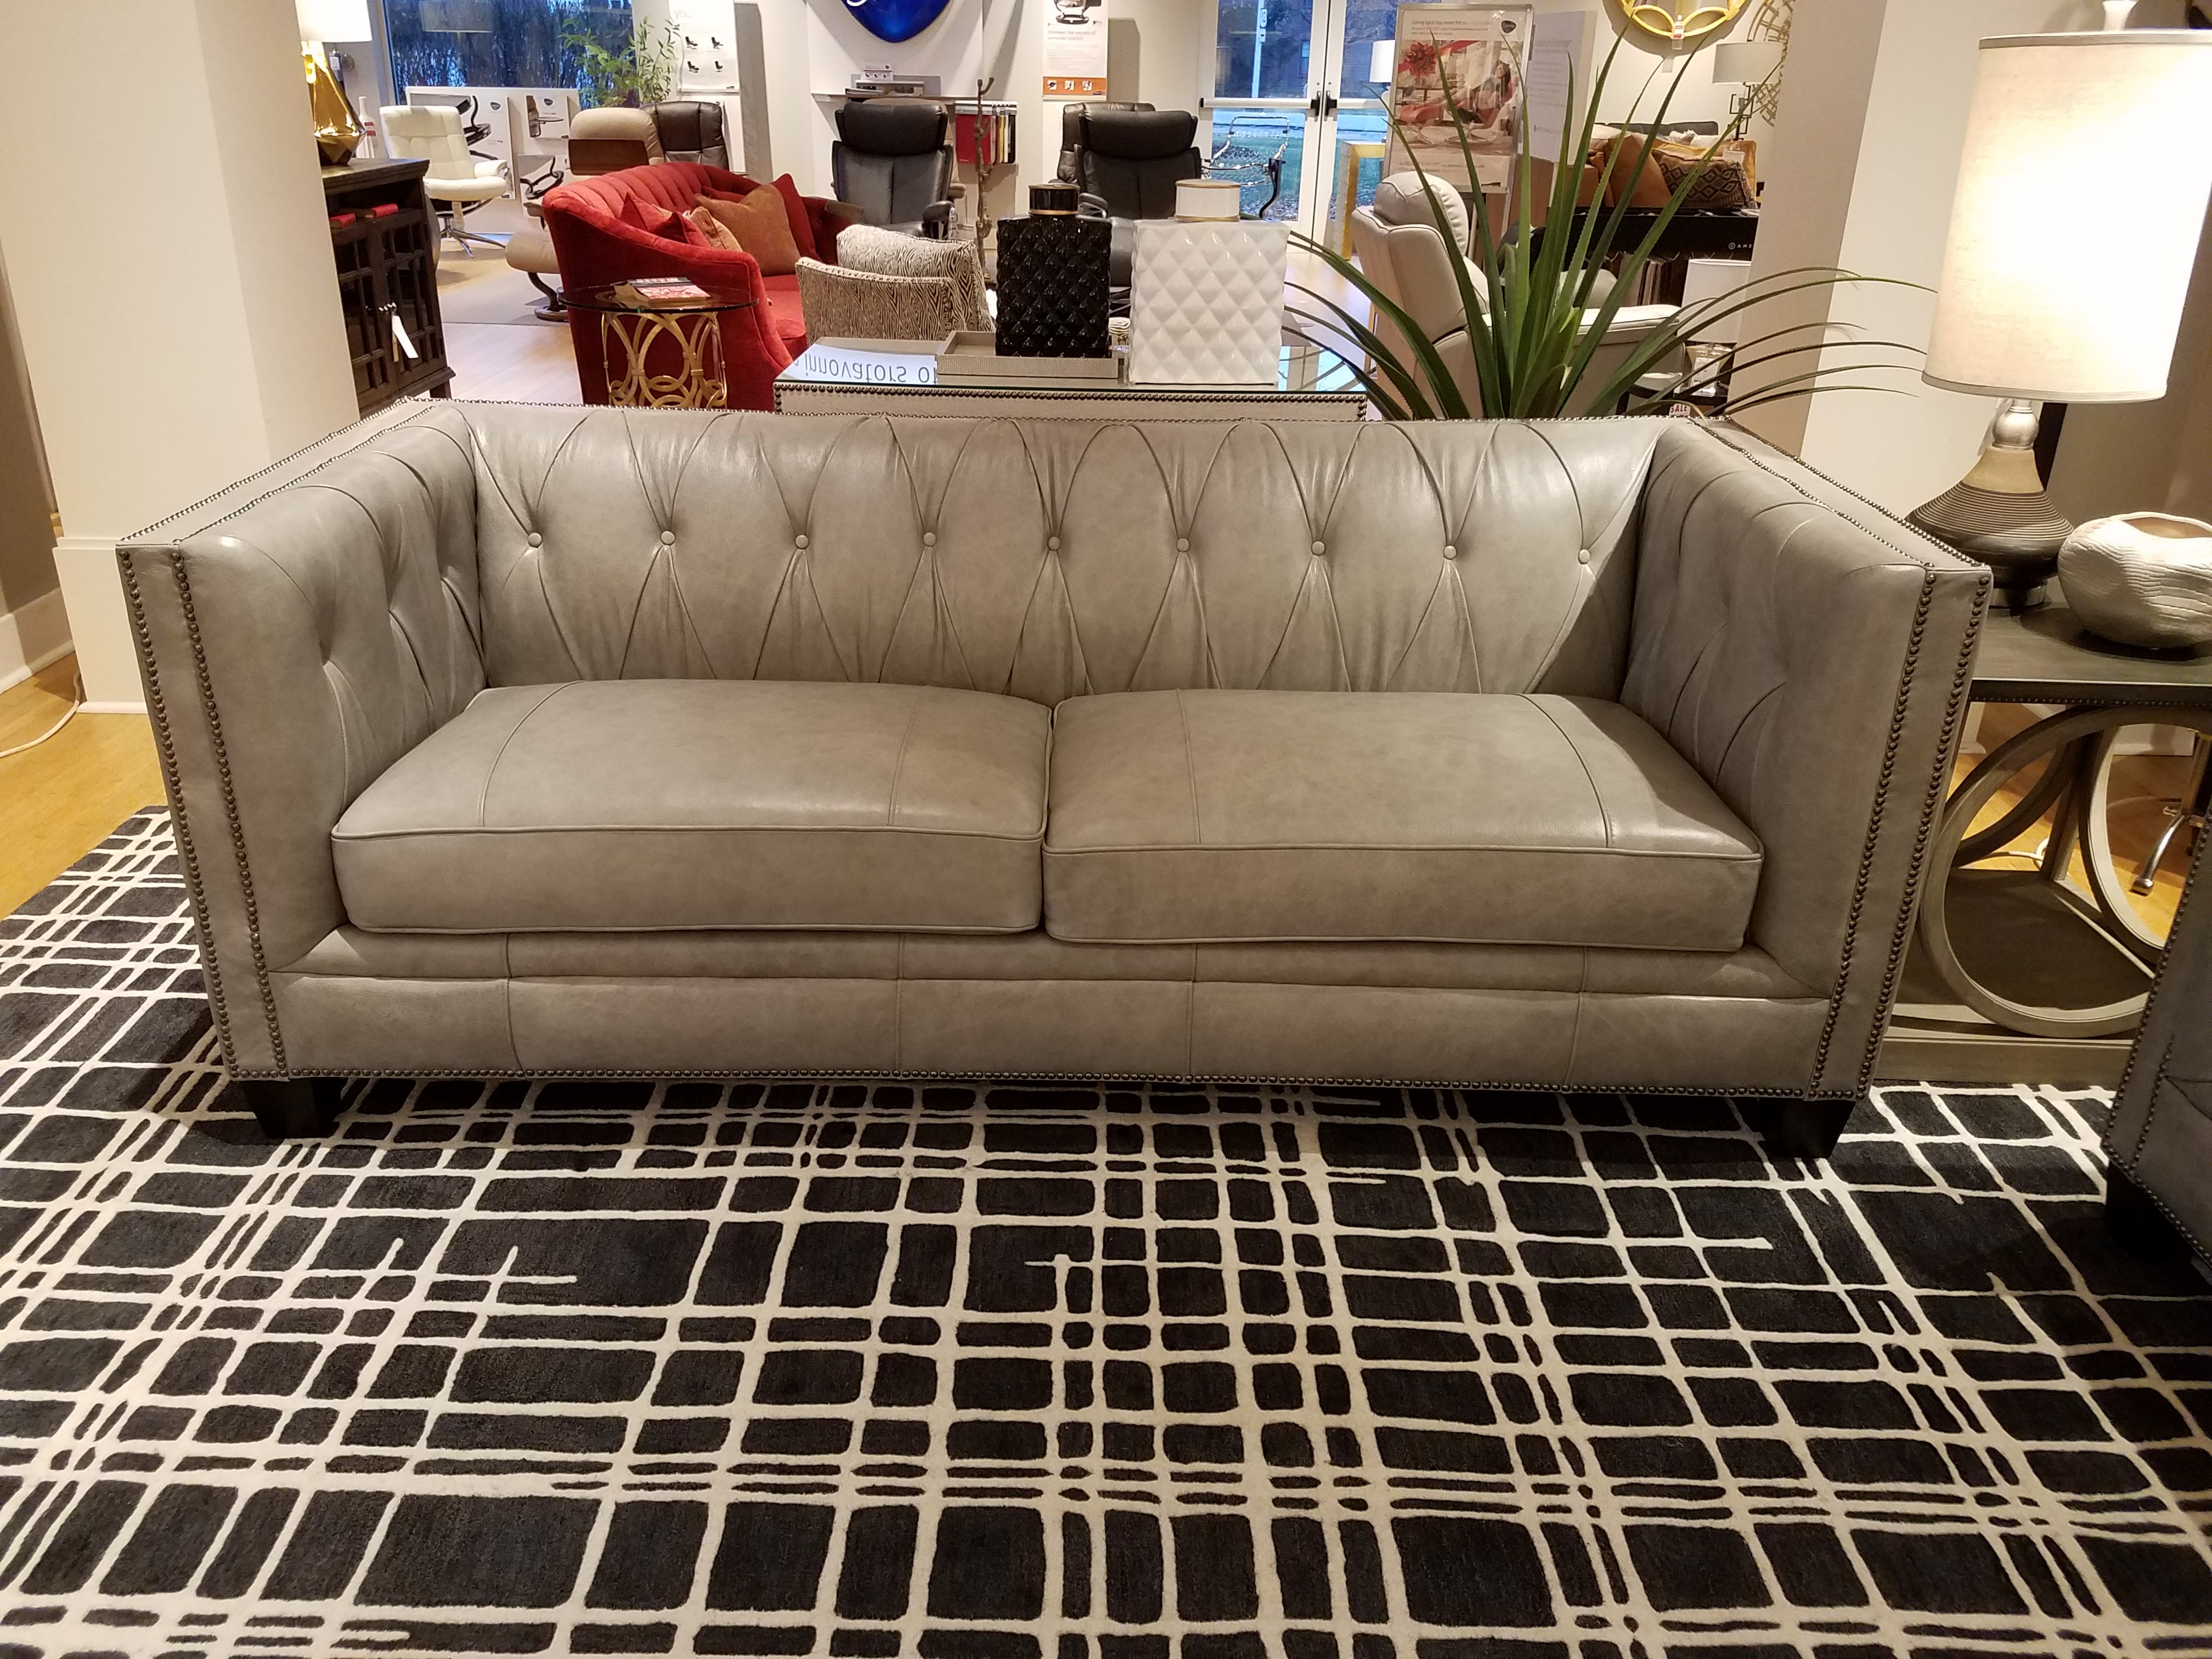 tufted leather sofa cheap quilted designs marlow nv9325stst clr clearance